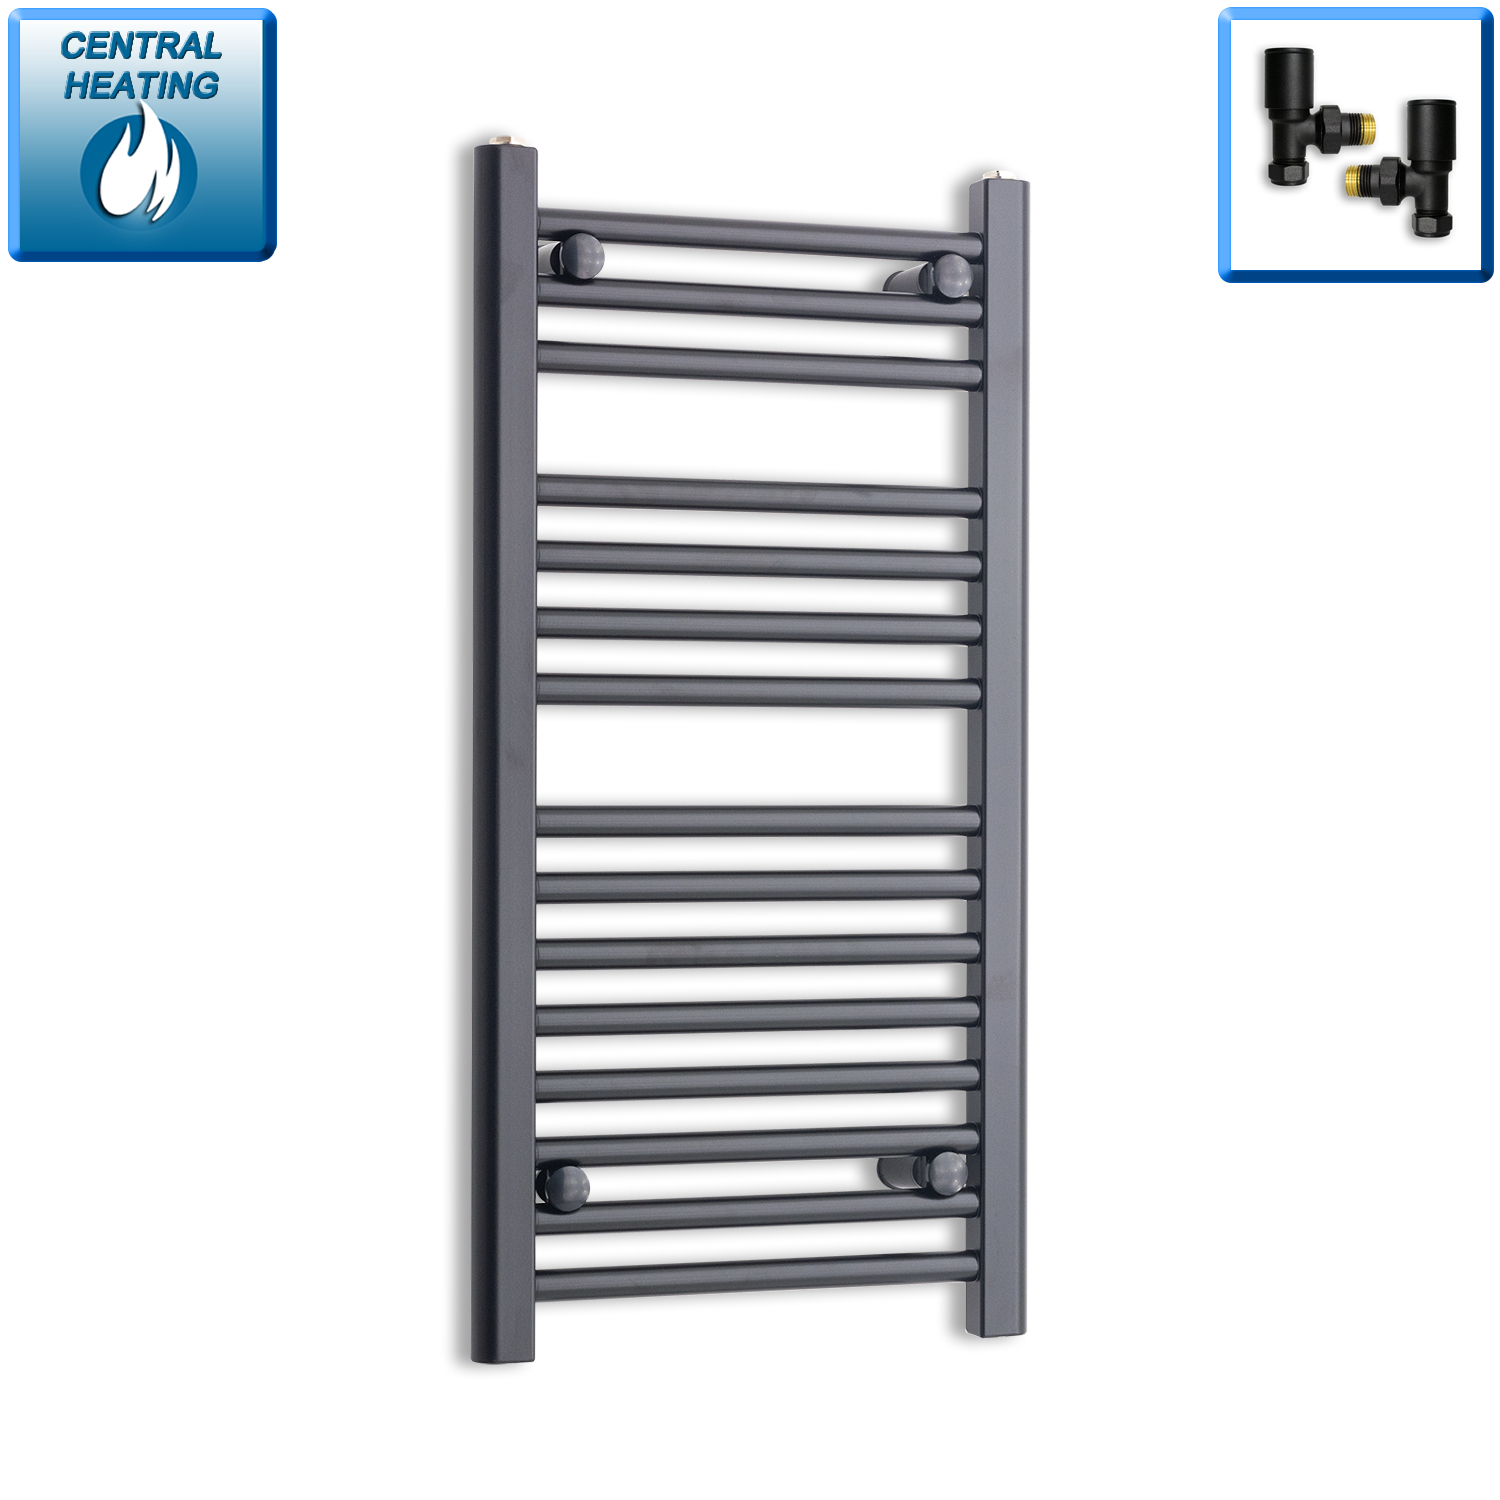 400mm Wide 800mm High Black Towel Rail Radiator With Angled Valve